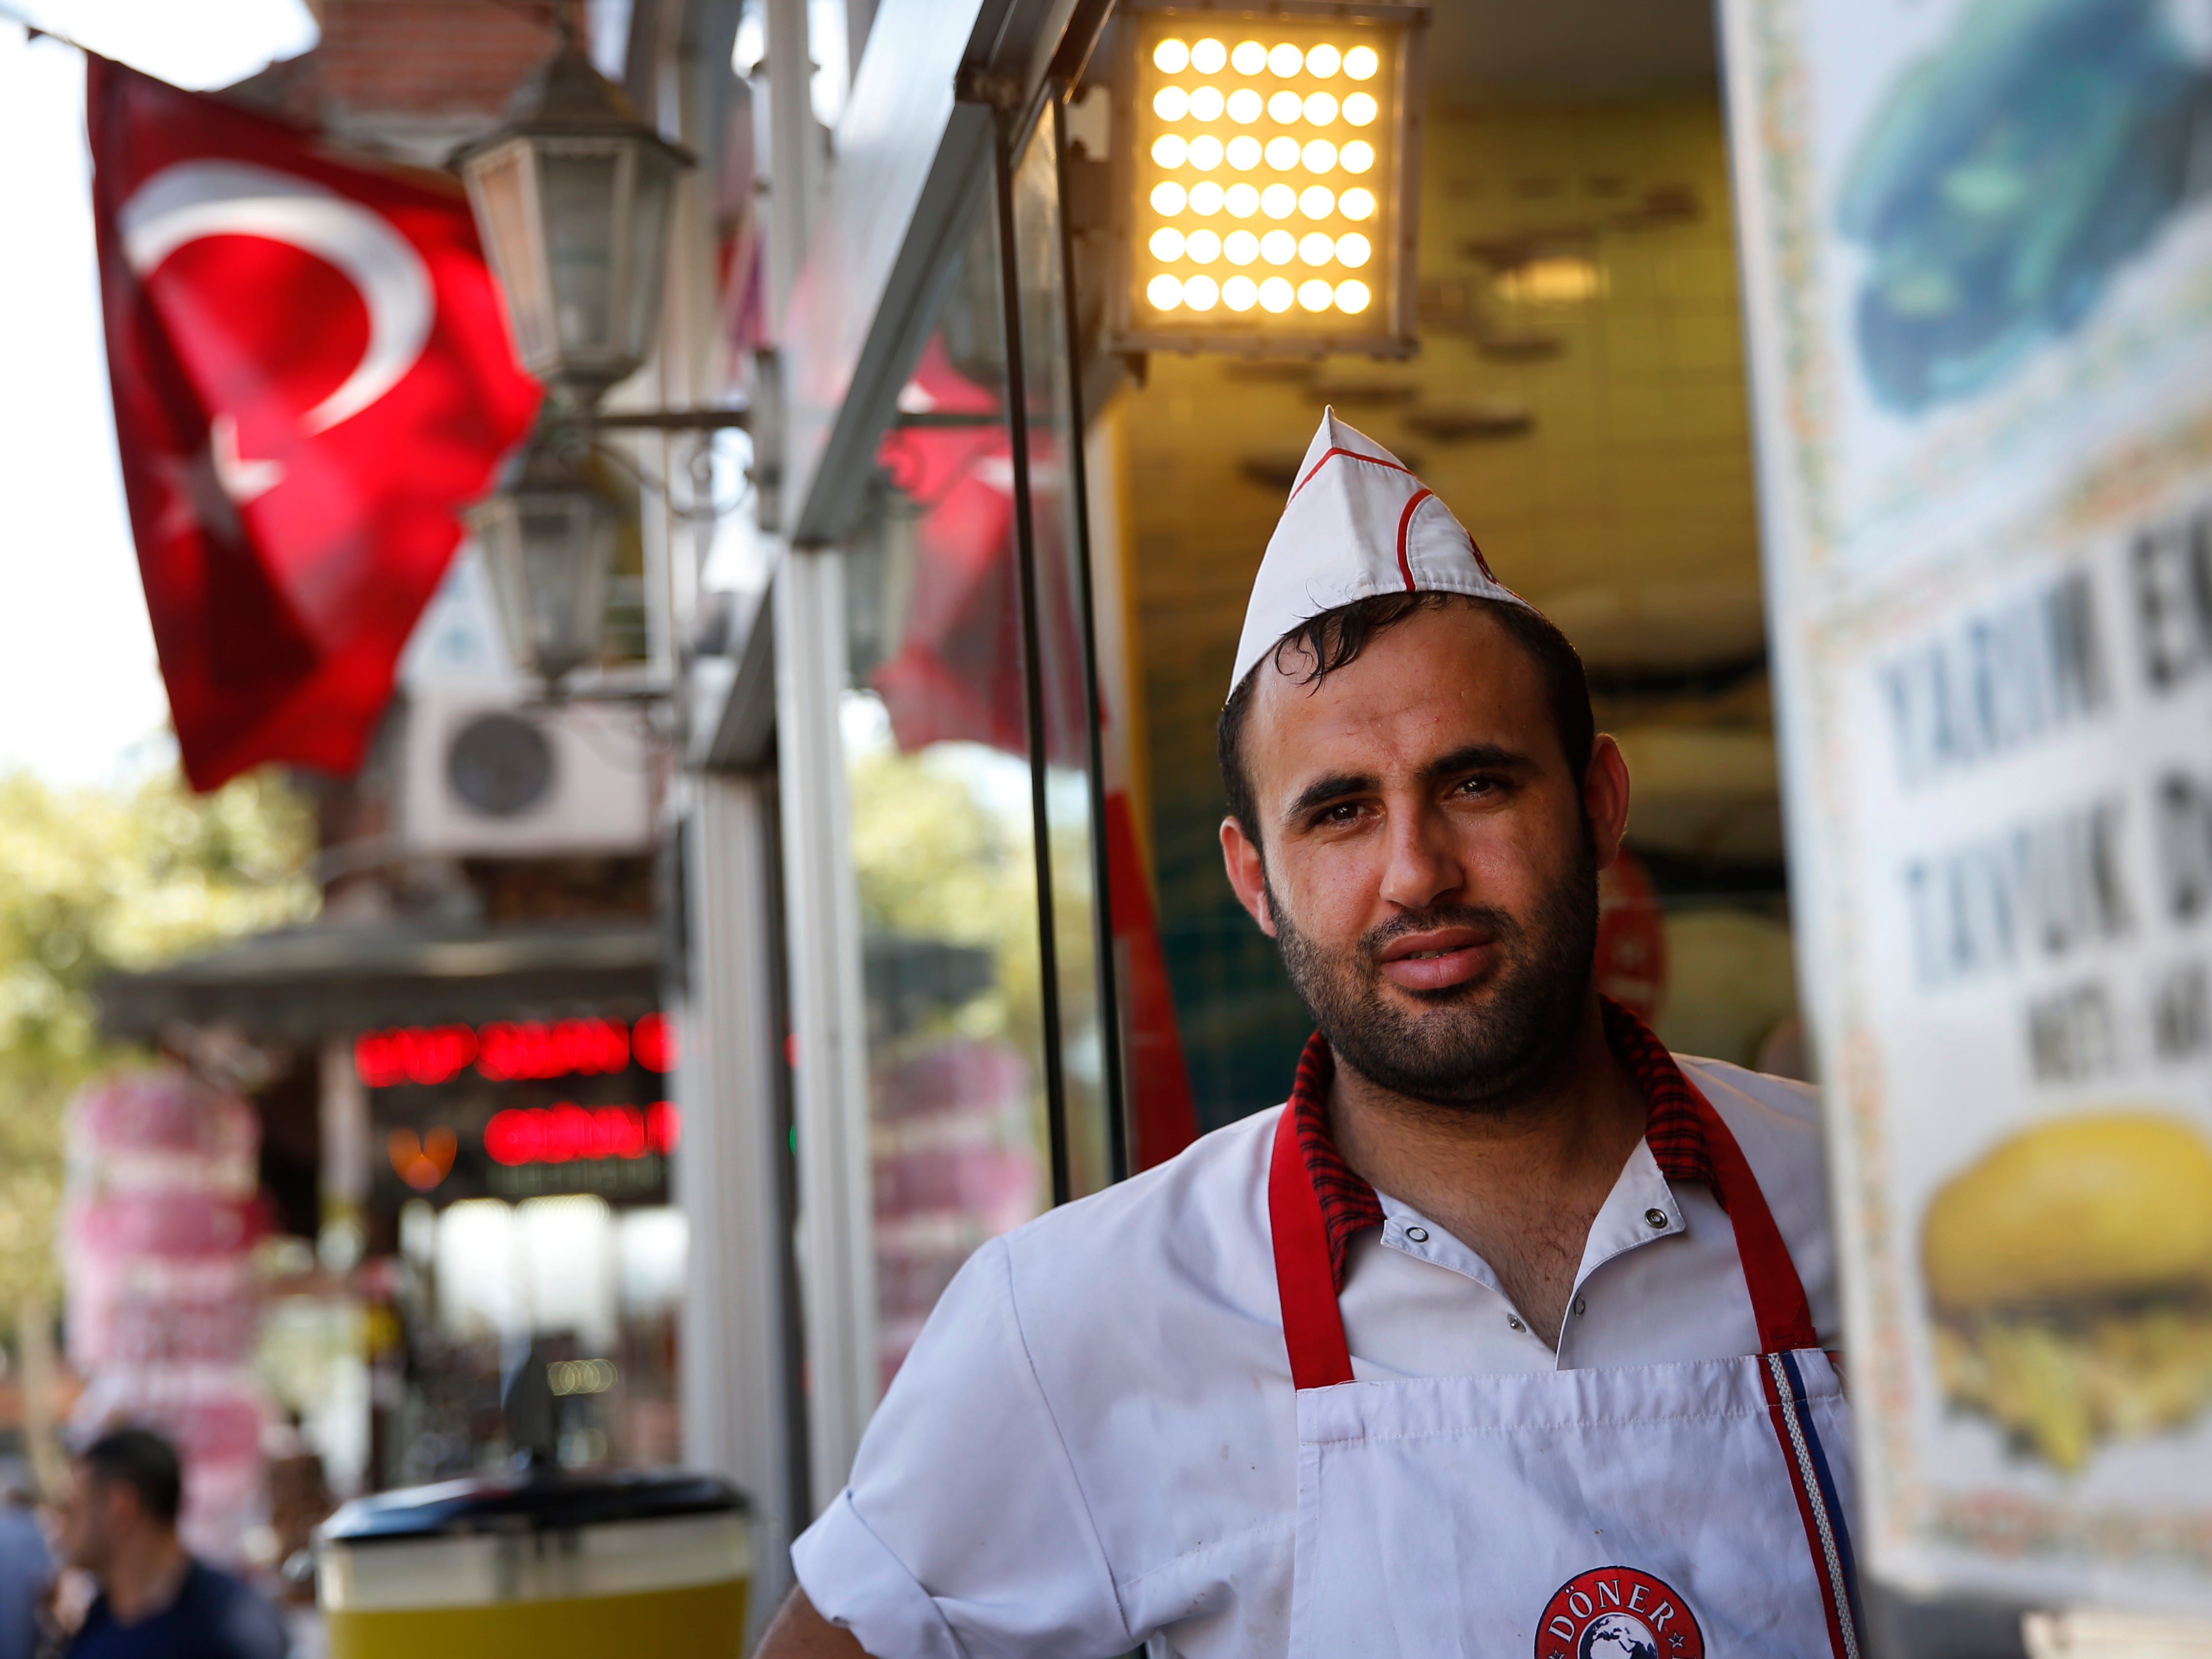 A restaurant worker poses for a photograph in Istanbul, Aug. 15, 2018. Turkish President Erdogan says Turkey will boycott U.S. electronic goods, including Apple's iPhone and slapped an additional tax on imports of American goods from cars to rice to alcohol.